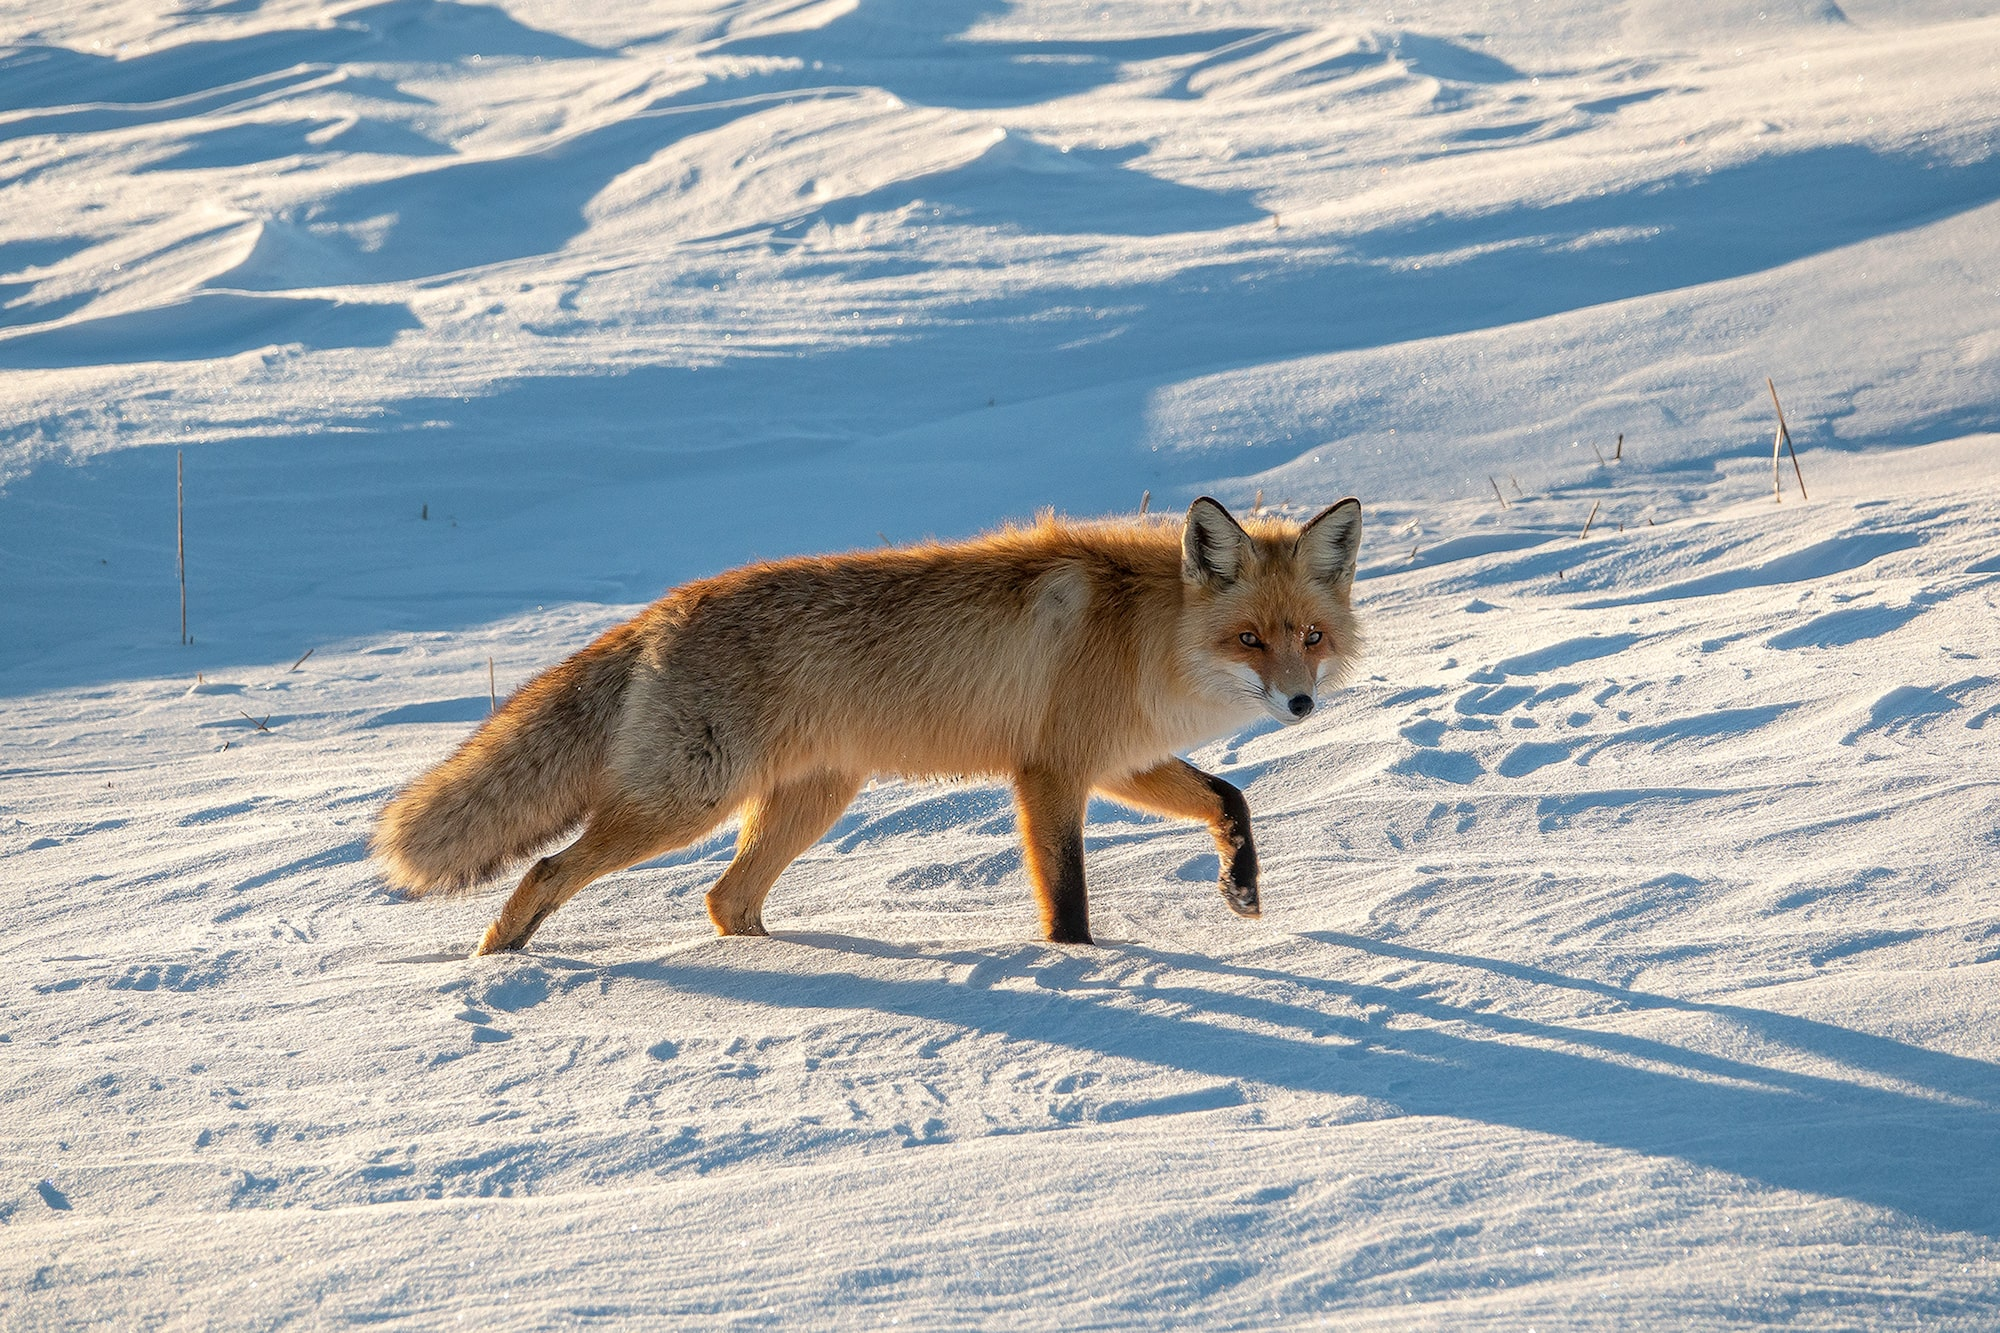 suha derbent sony rx10IV fox walking across the snow while looking at the photographer